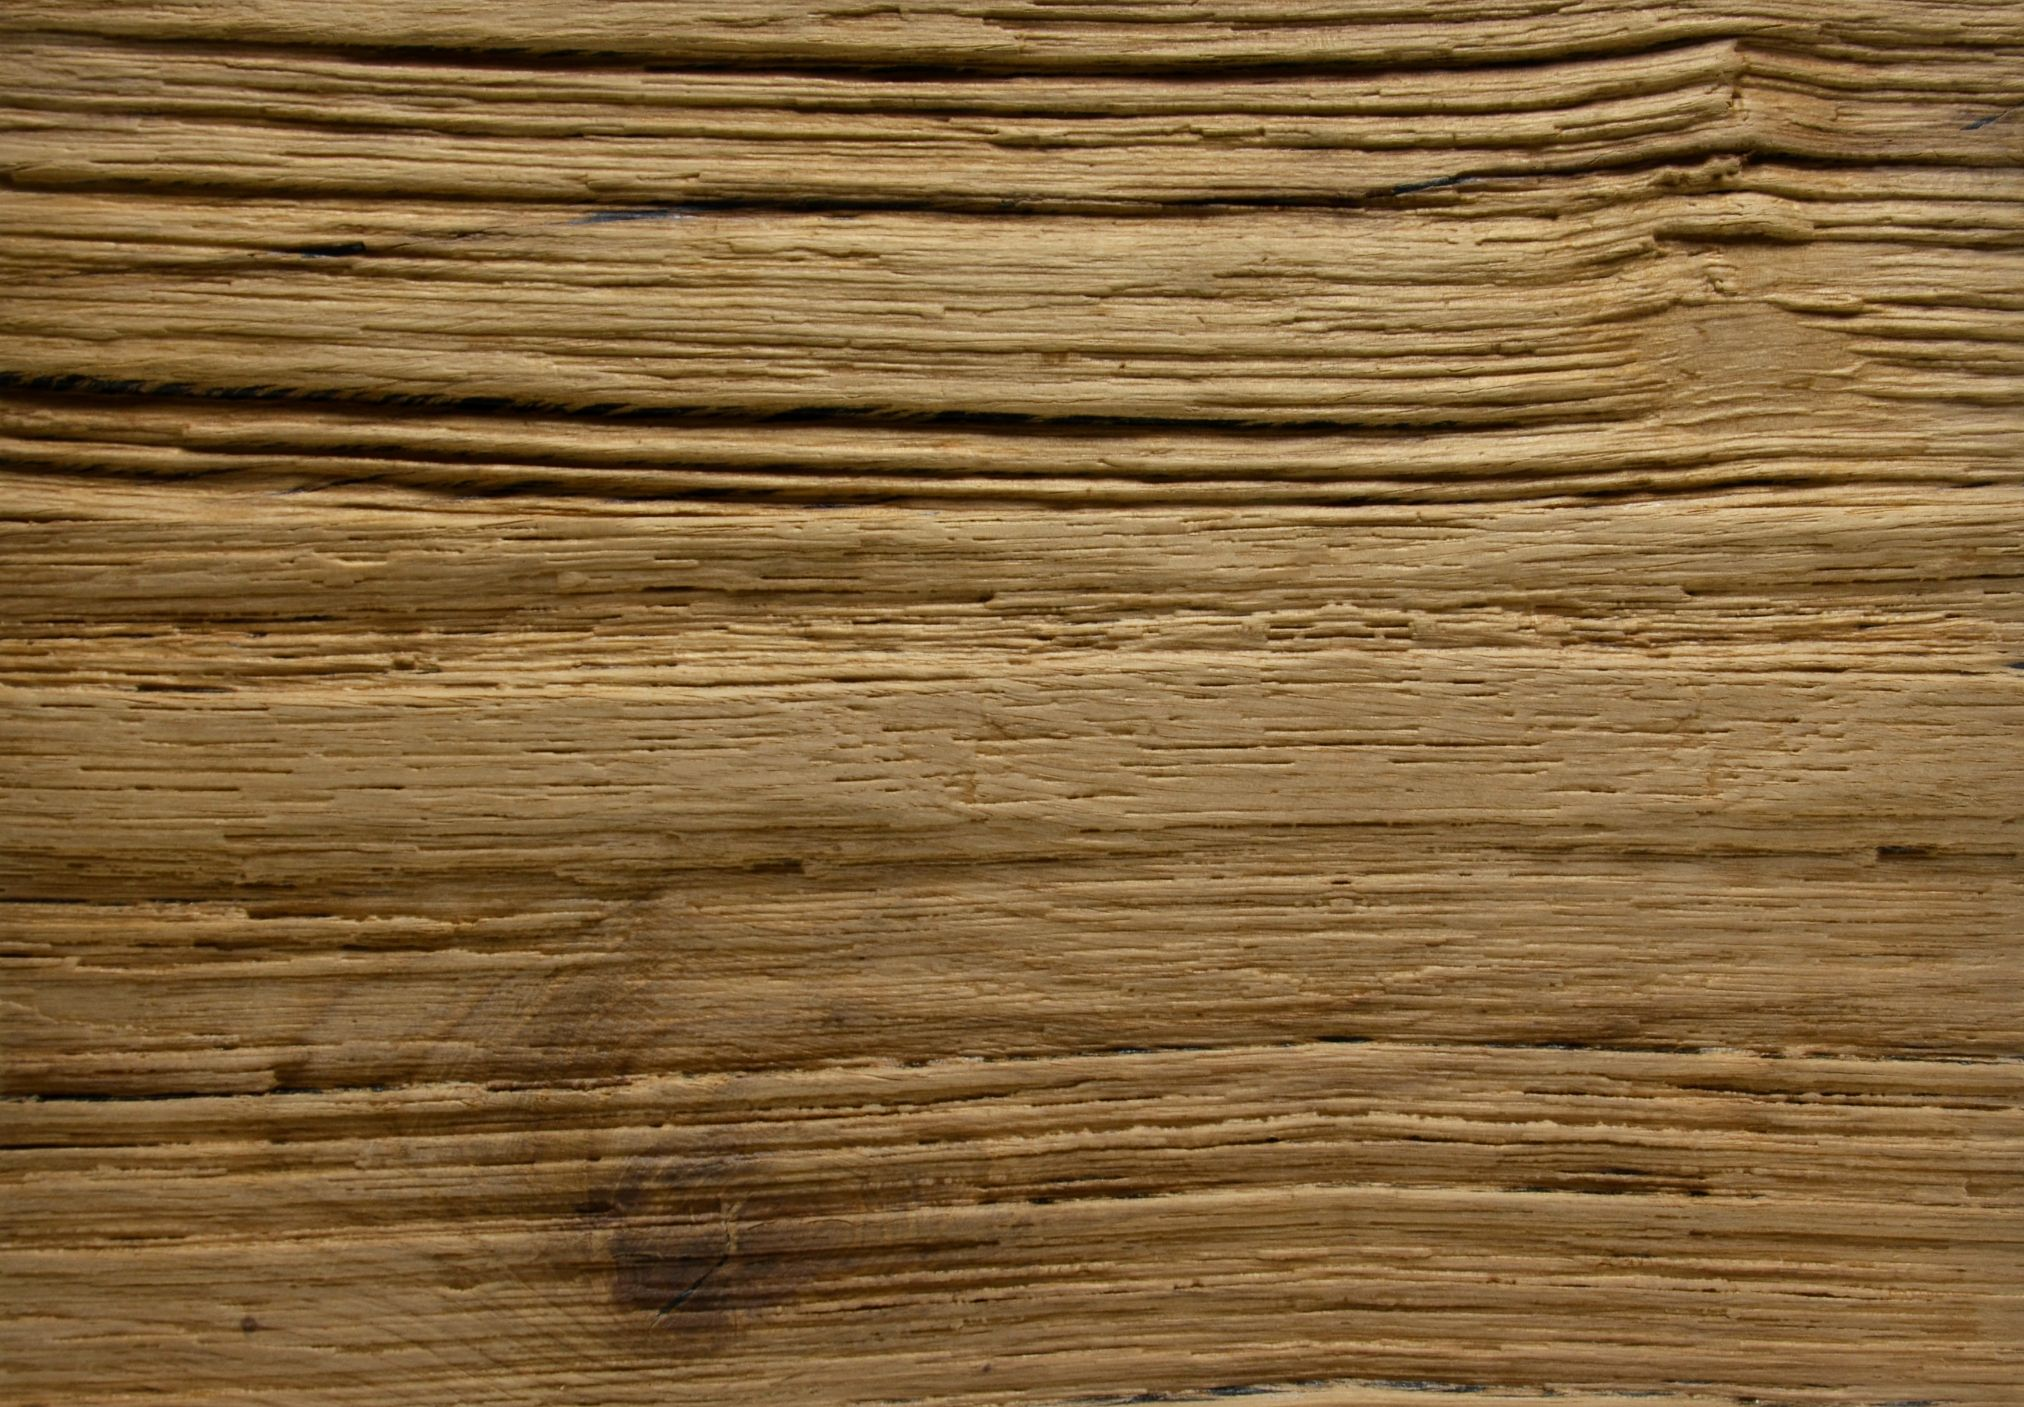 2468 - SPALT - Old Oak - Real wood veneer